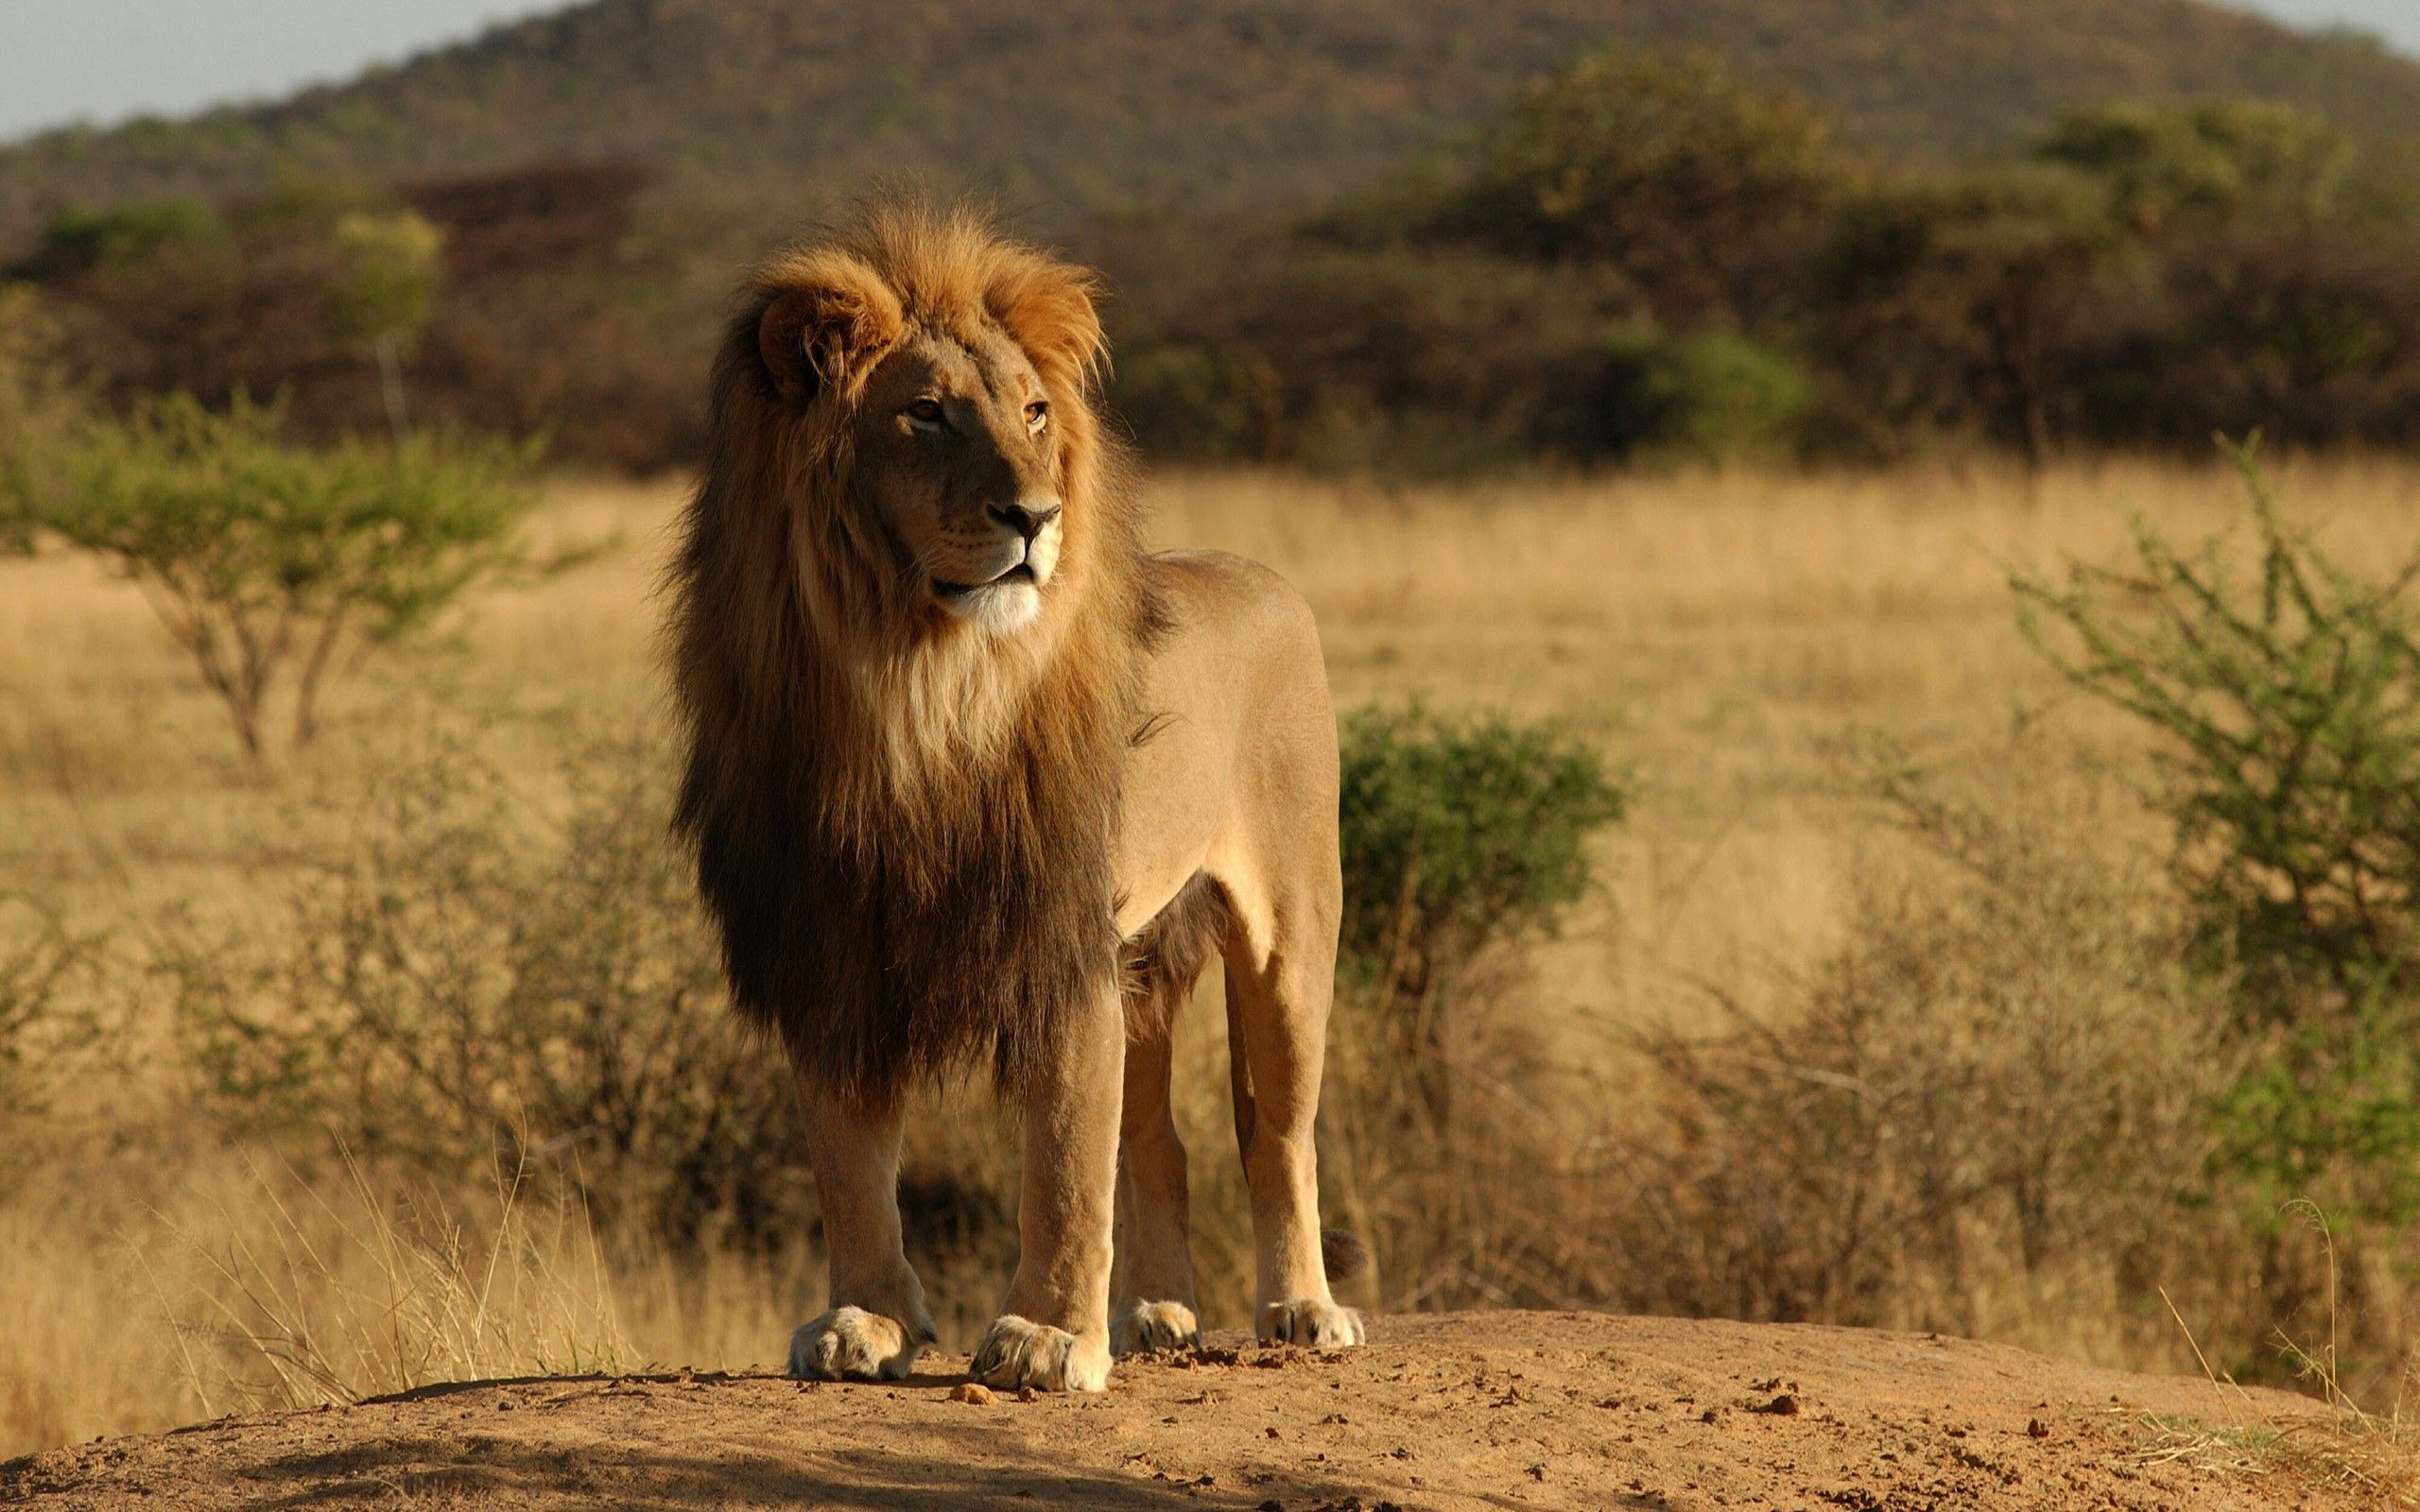 African Lion Wallpapers, Free Images, Top Lions HD